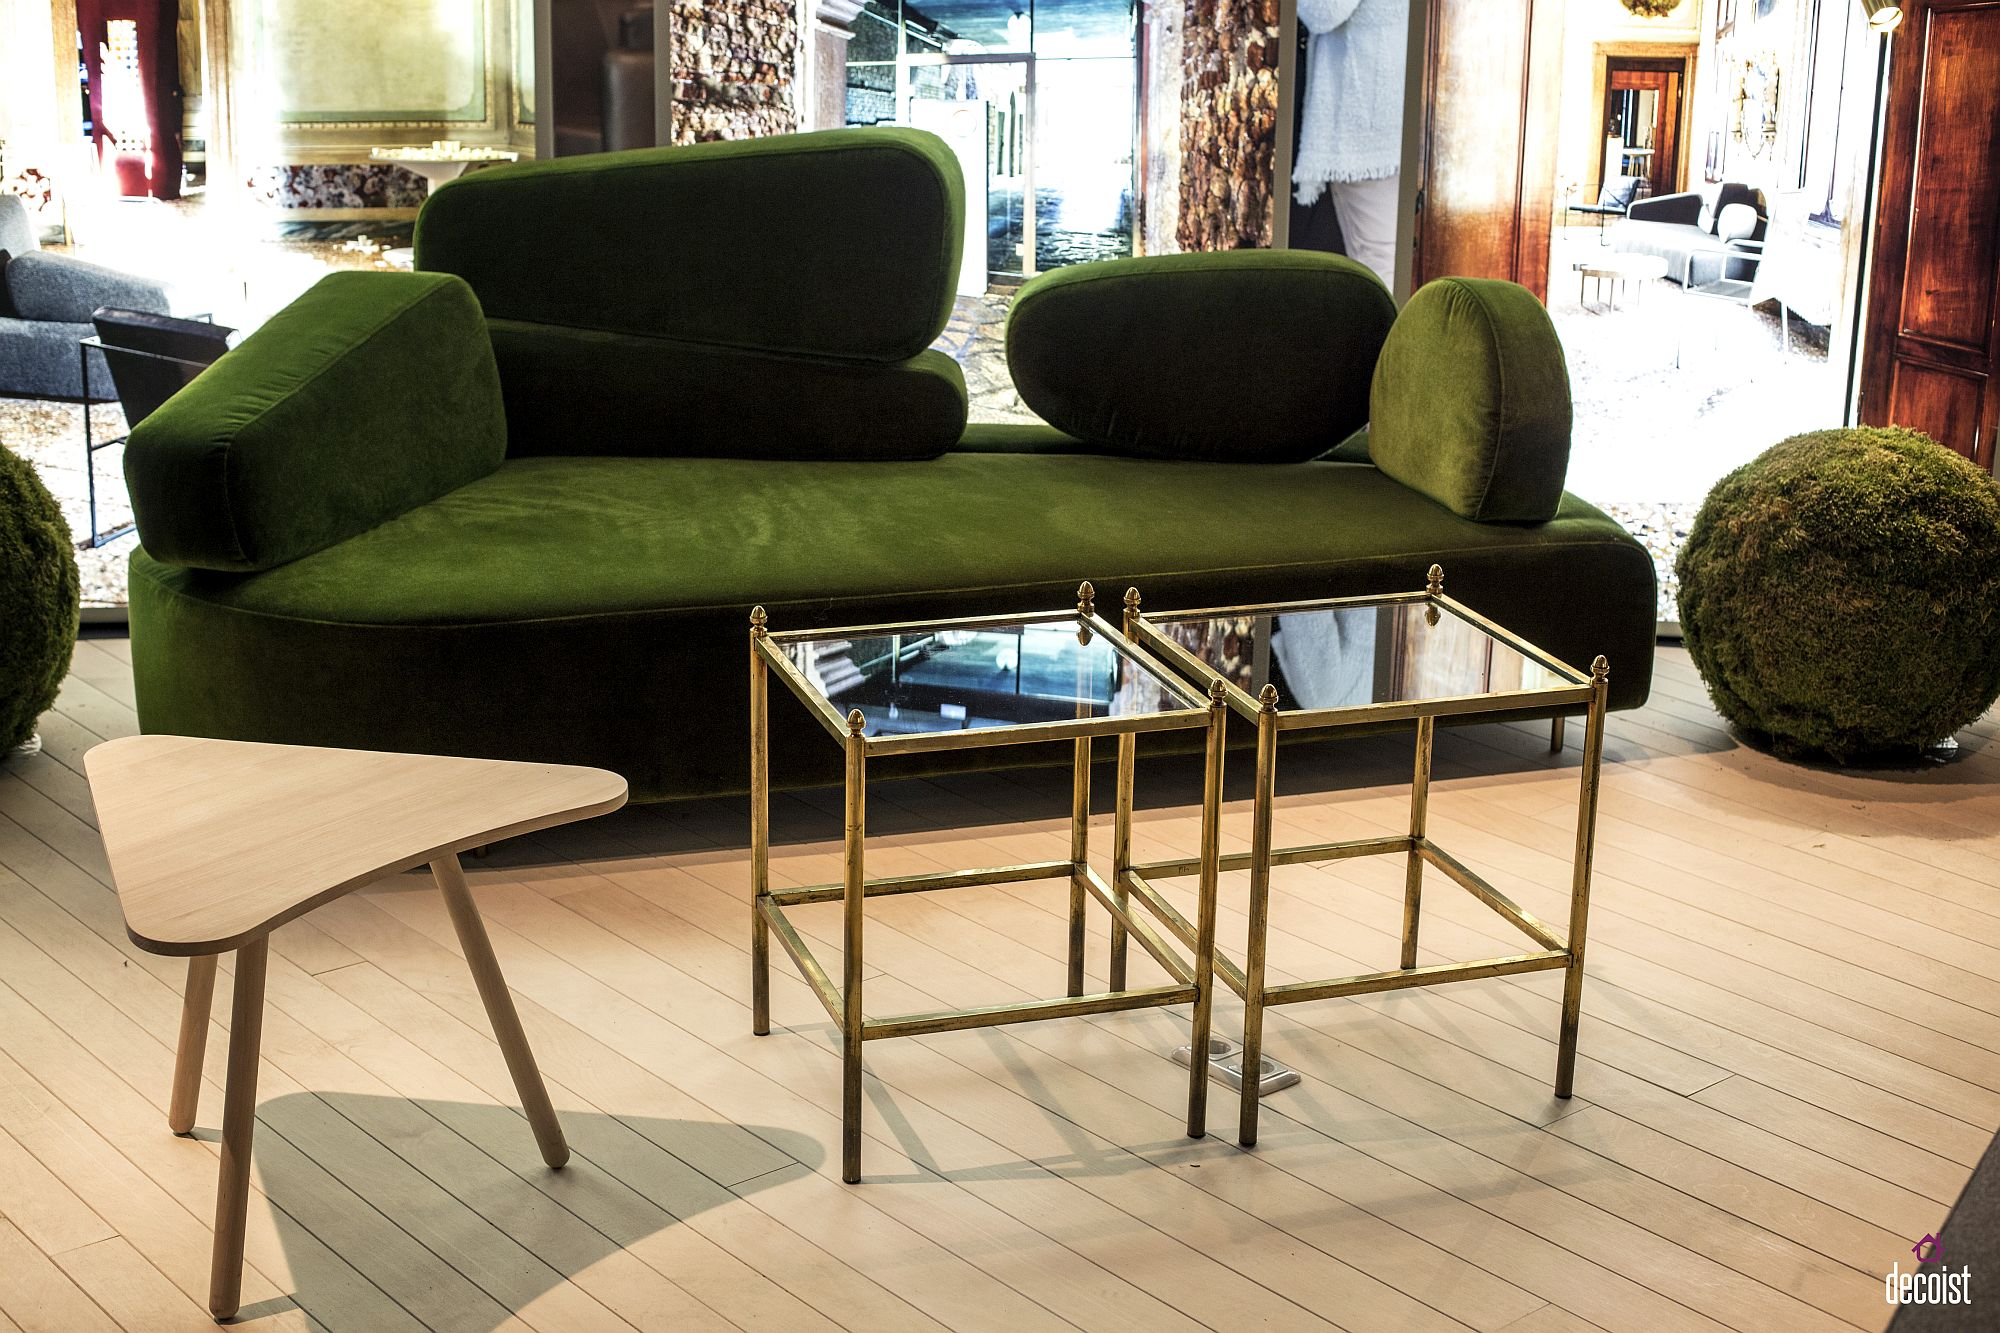 Striking green couch from bruhl